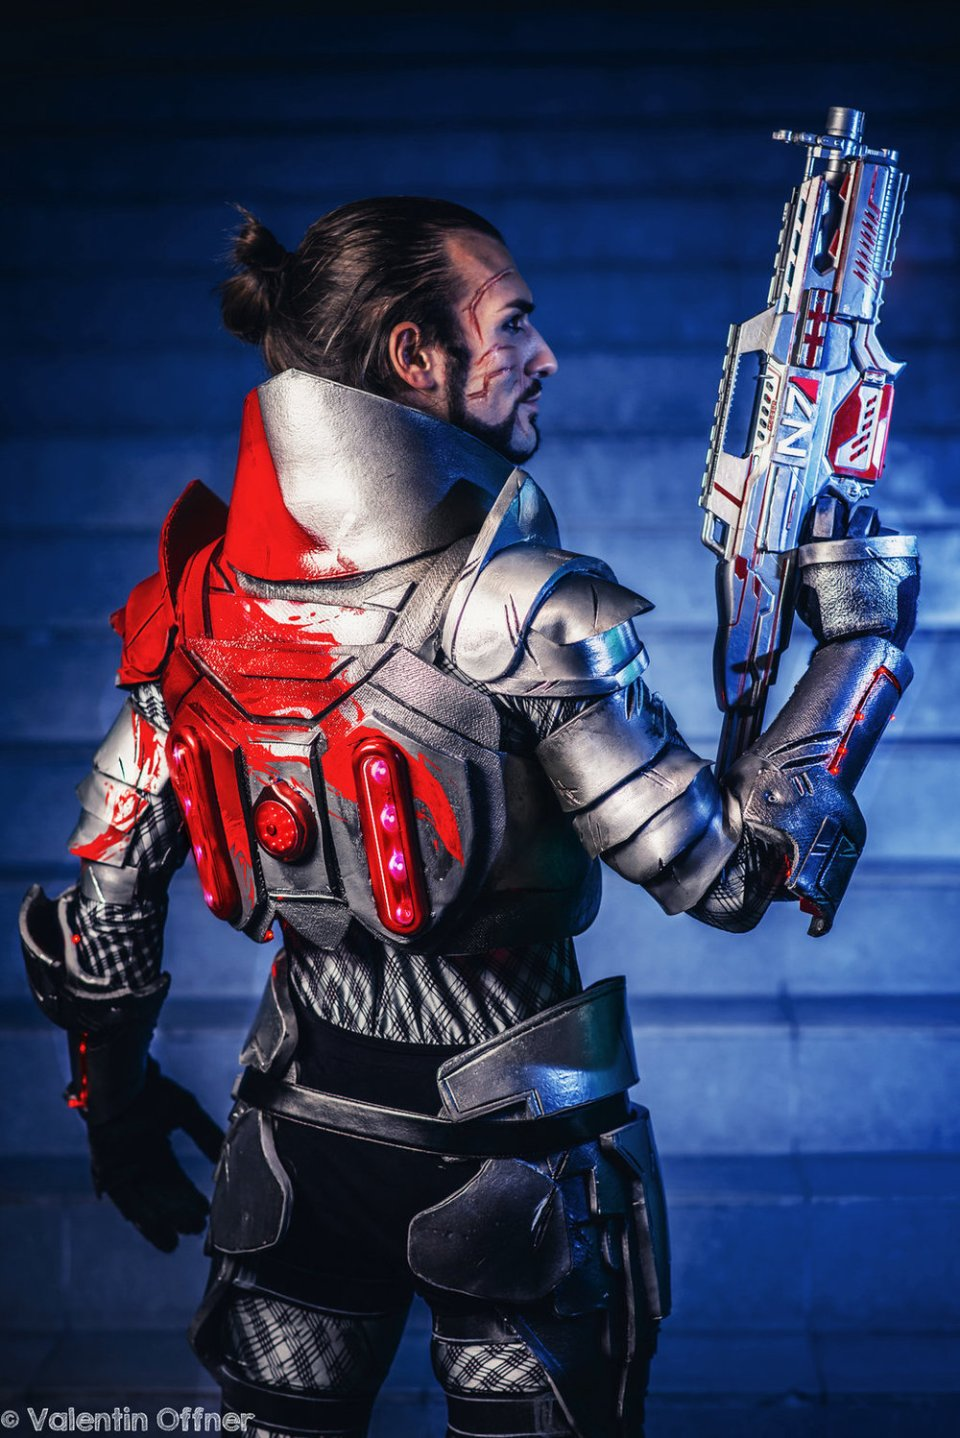 Blood Dragon armor from Mass Effect